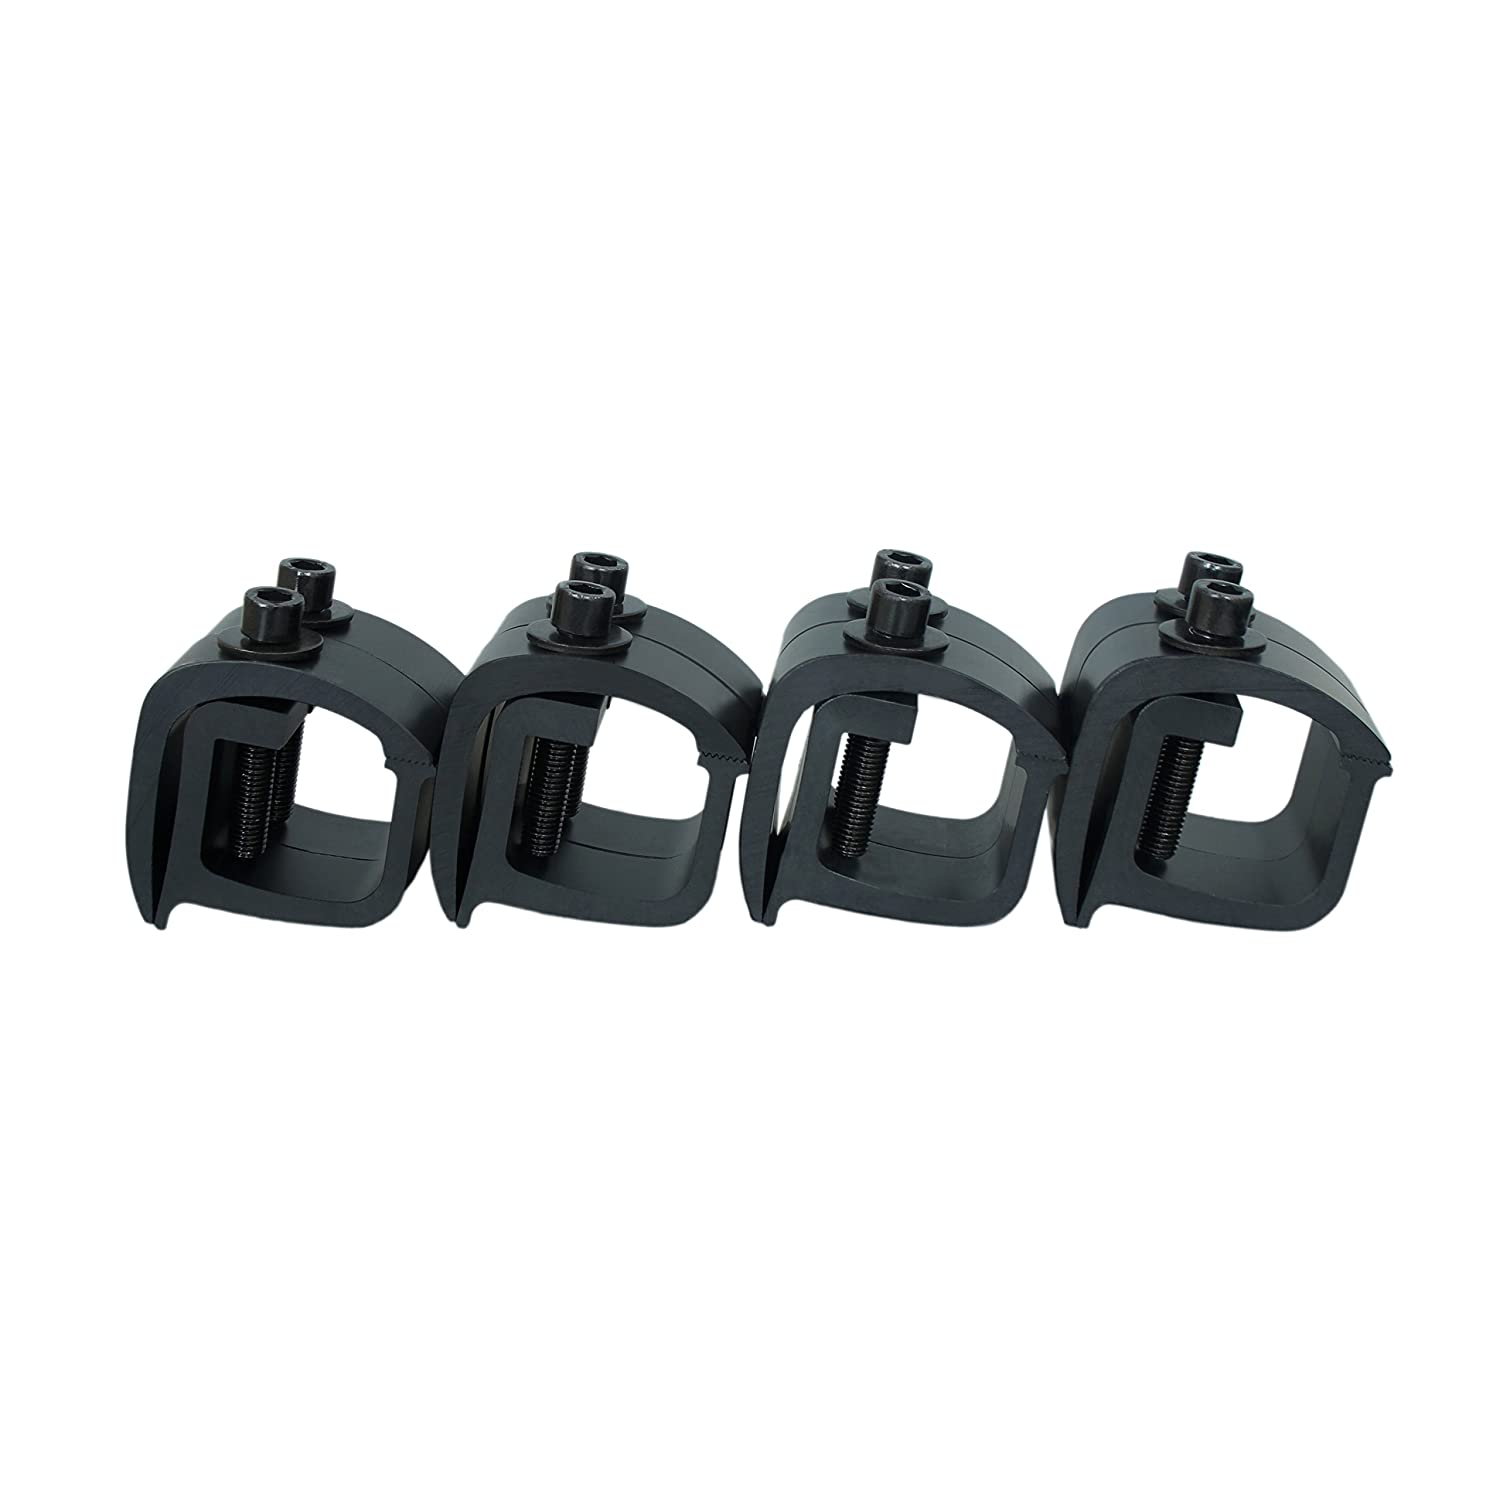 AA Products Inc. AA-Racks Set of 8 Aluminum C-clamps For Non-Drilling Truck Rack & Camper Shell Installation-Black